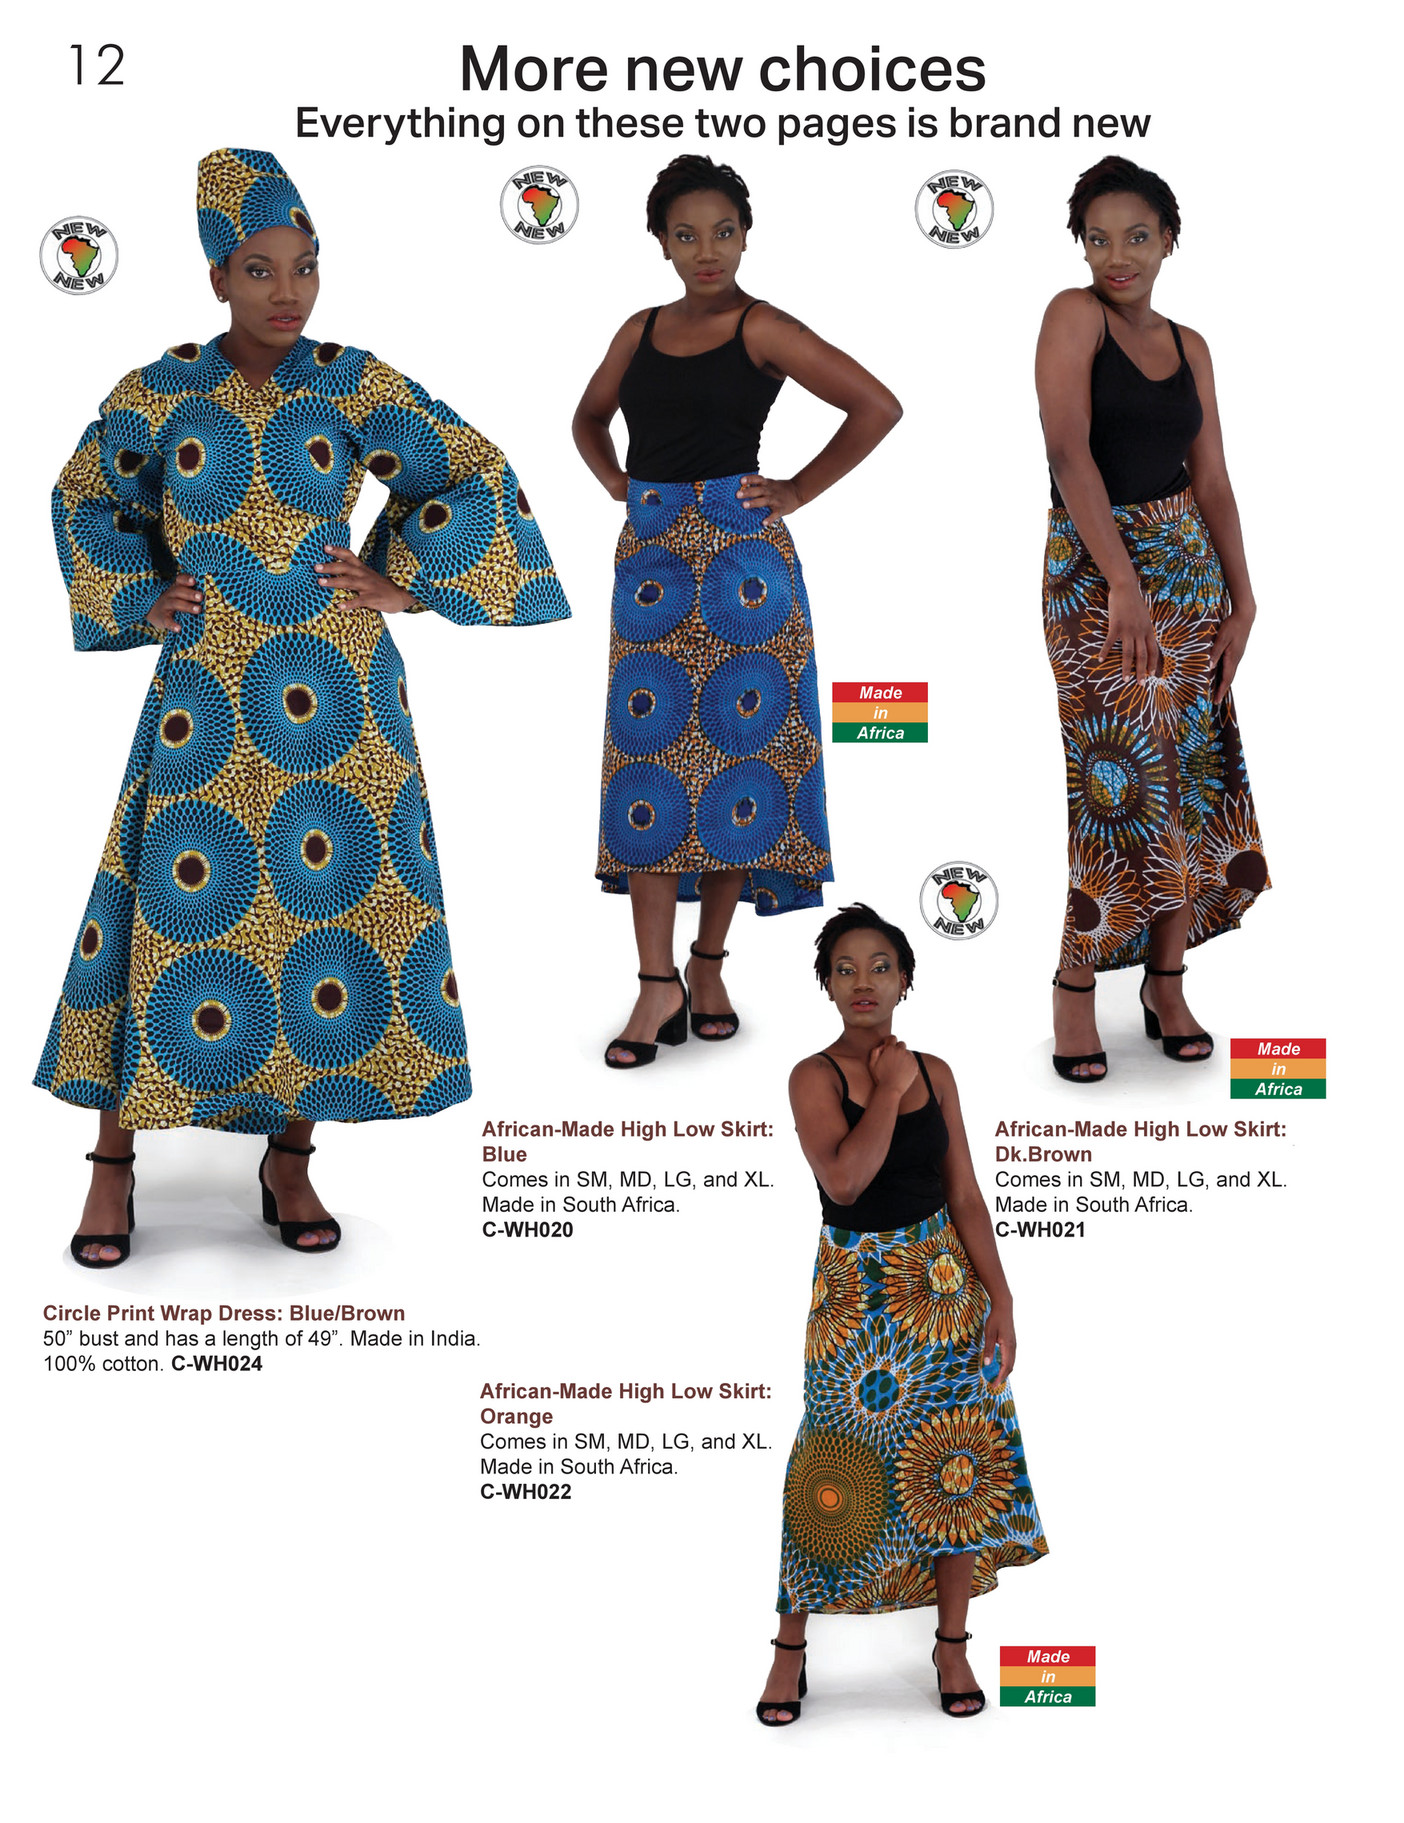 African Clothing Africanclothcatalog 2018 Page 12 13